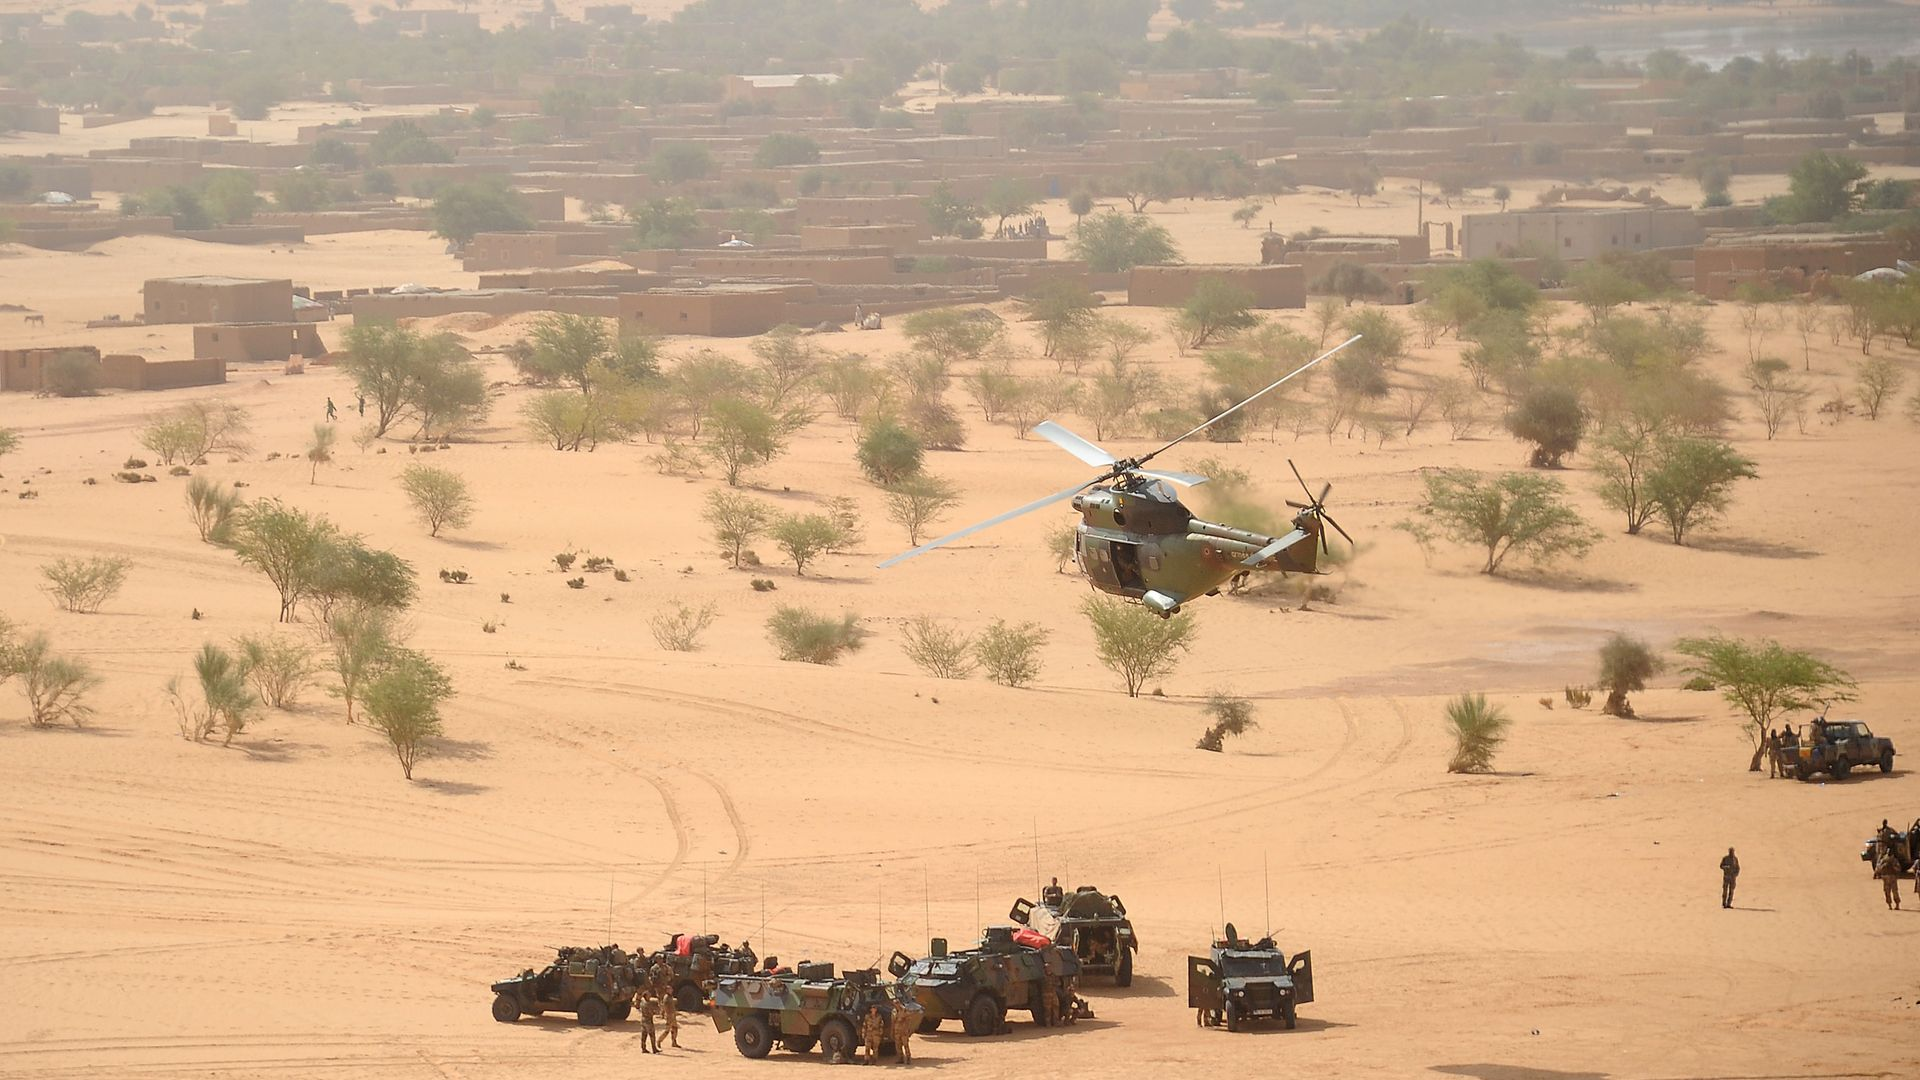 A Puma helicopter flies above French military vehicles near Bourem, northern Mali - Credit: AFP via Getty Images